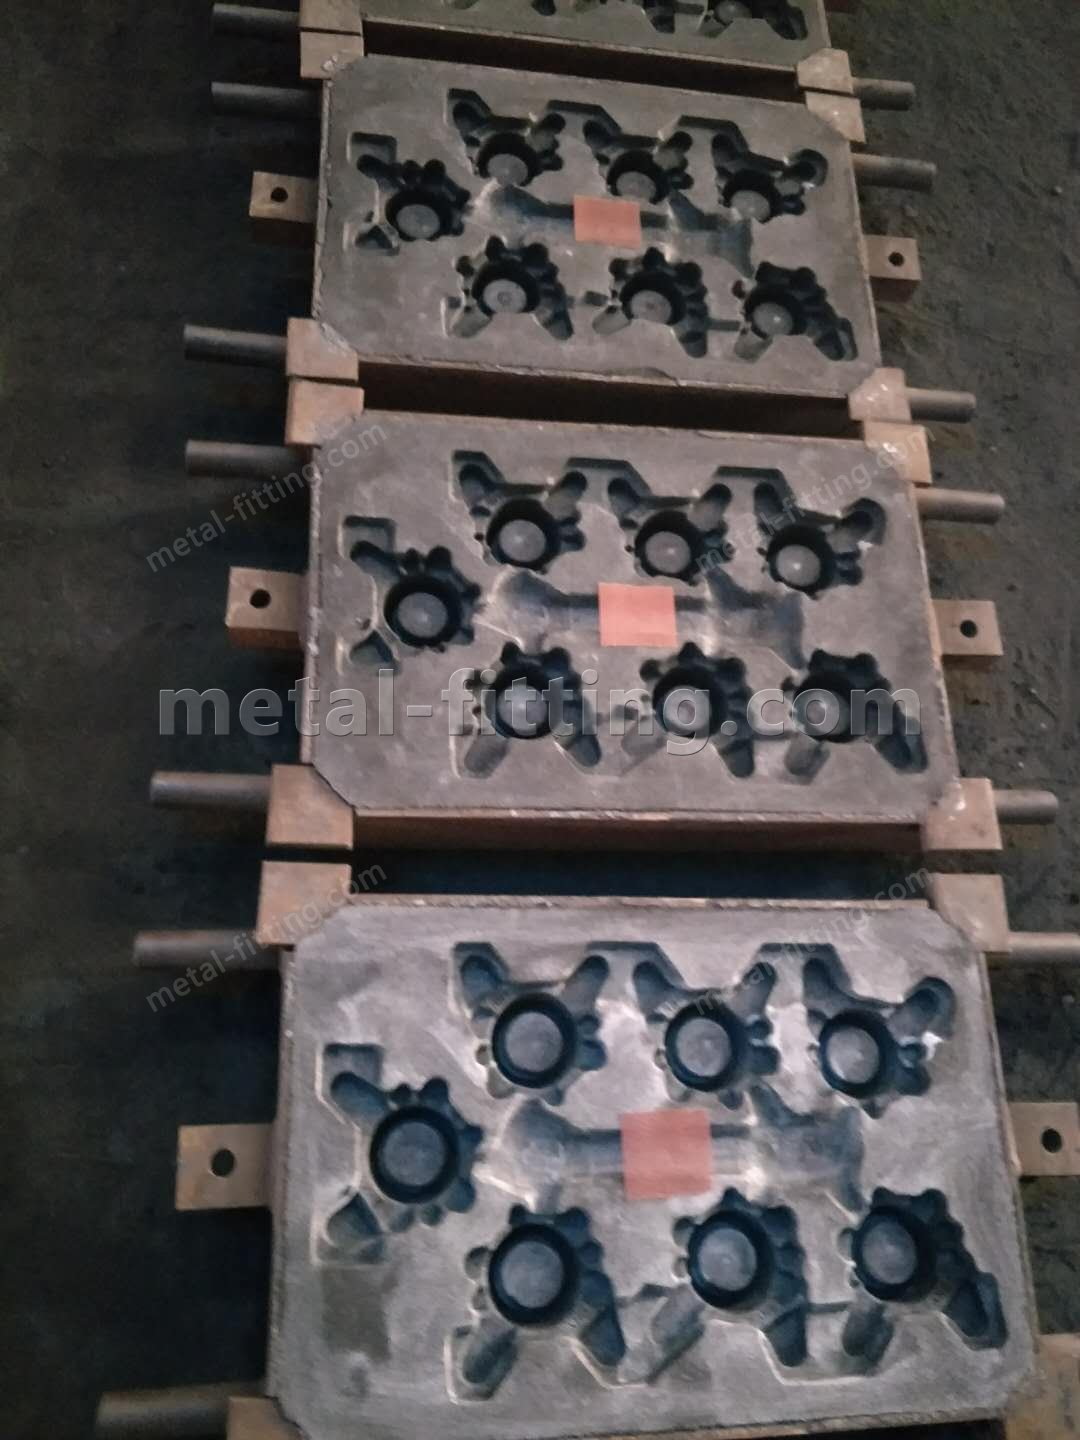 Casted iron Ring Gear and Pulley for concret Mixer-139069163537572745